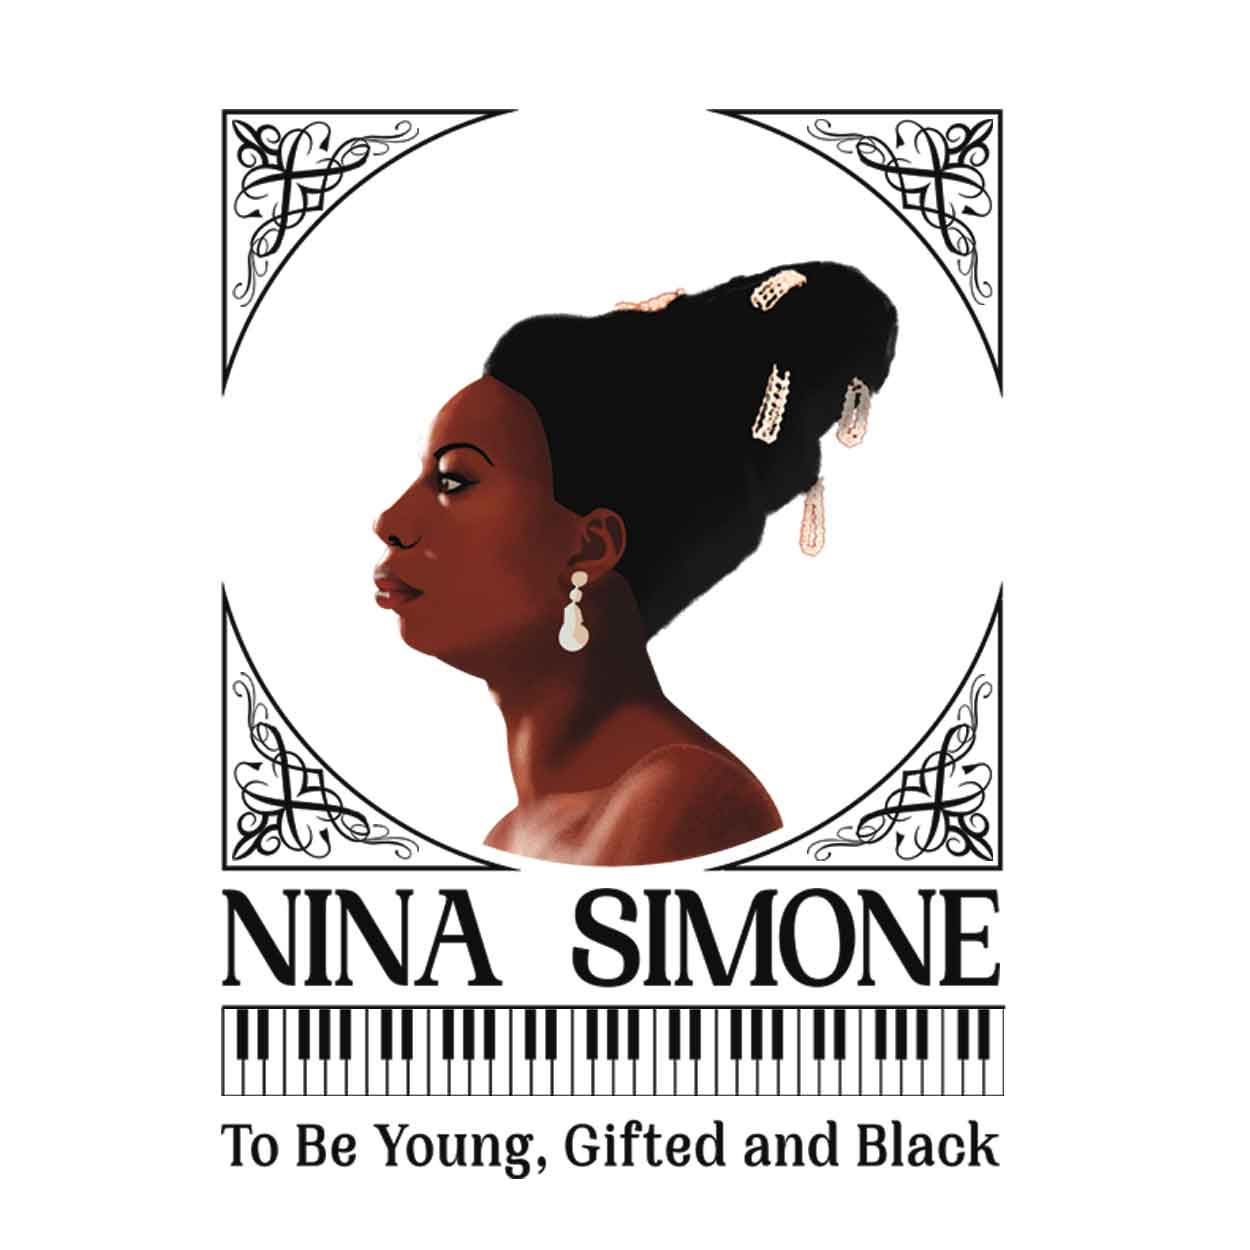 Camiseta - To Be Young, Gifted And Black - Nina Simone - Infantil